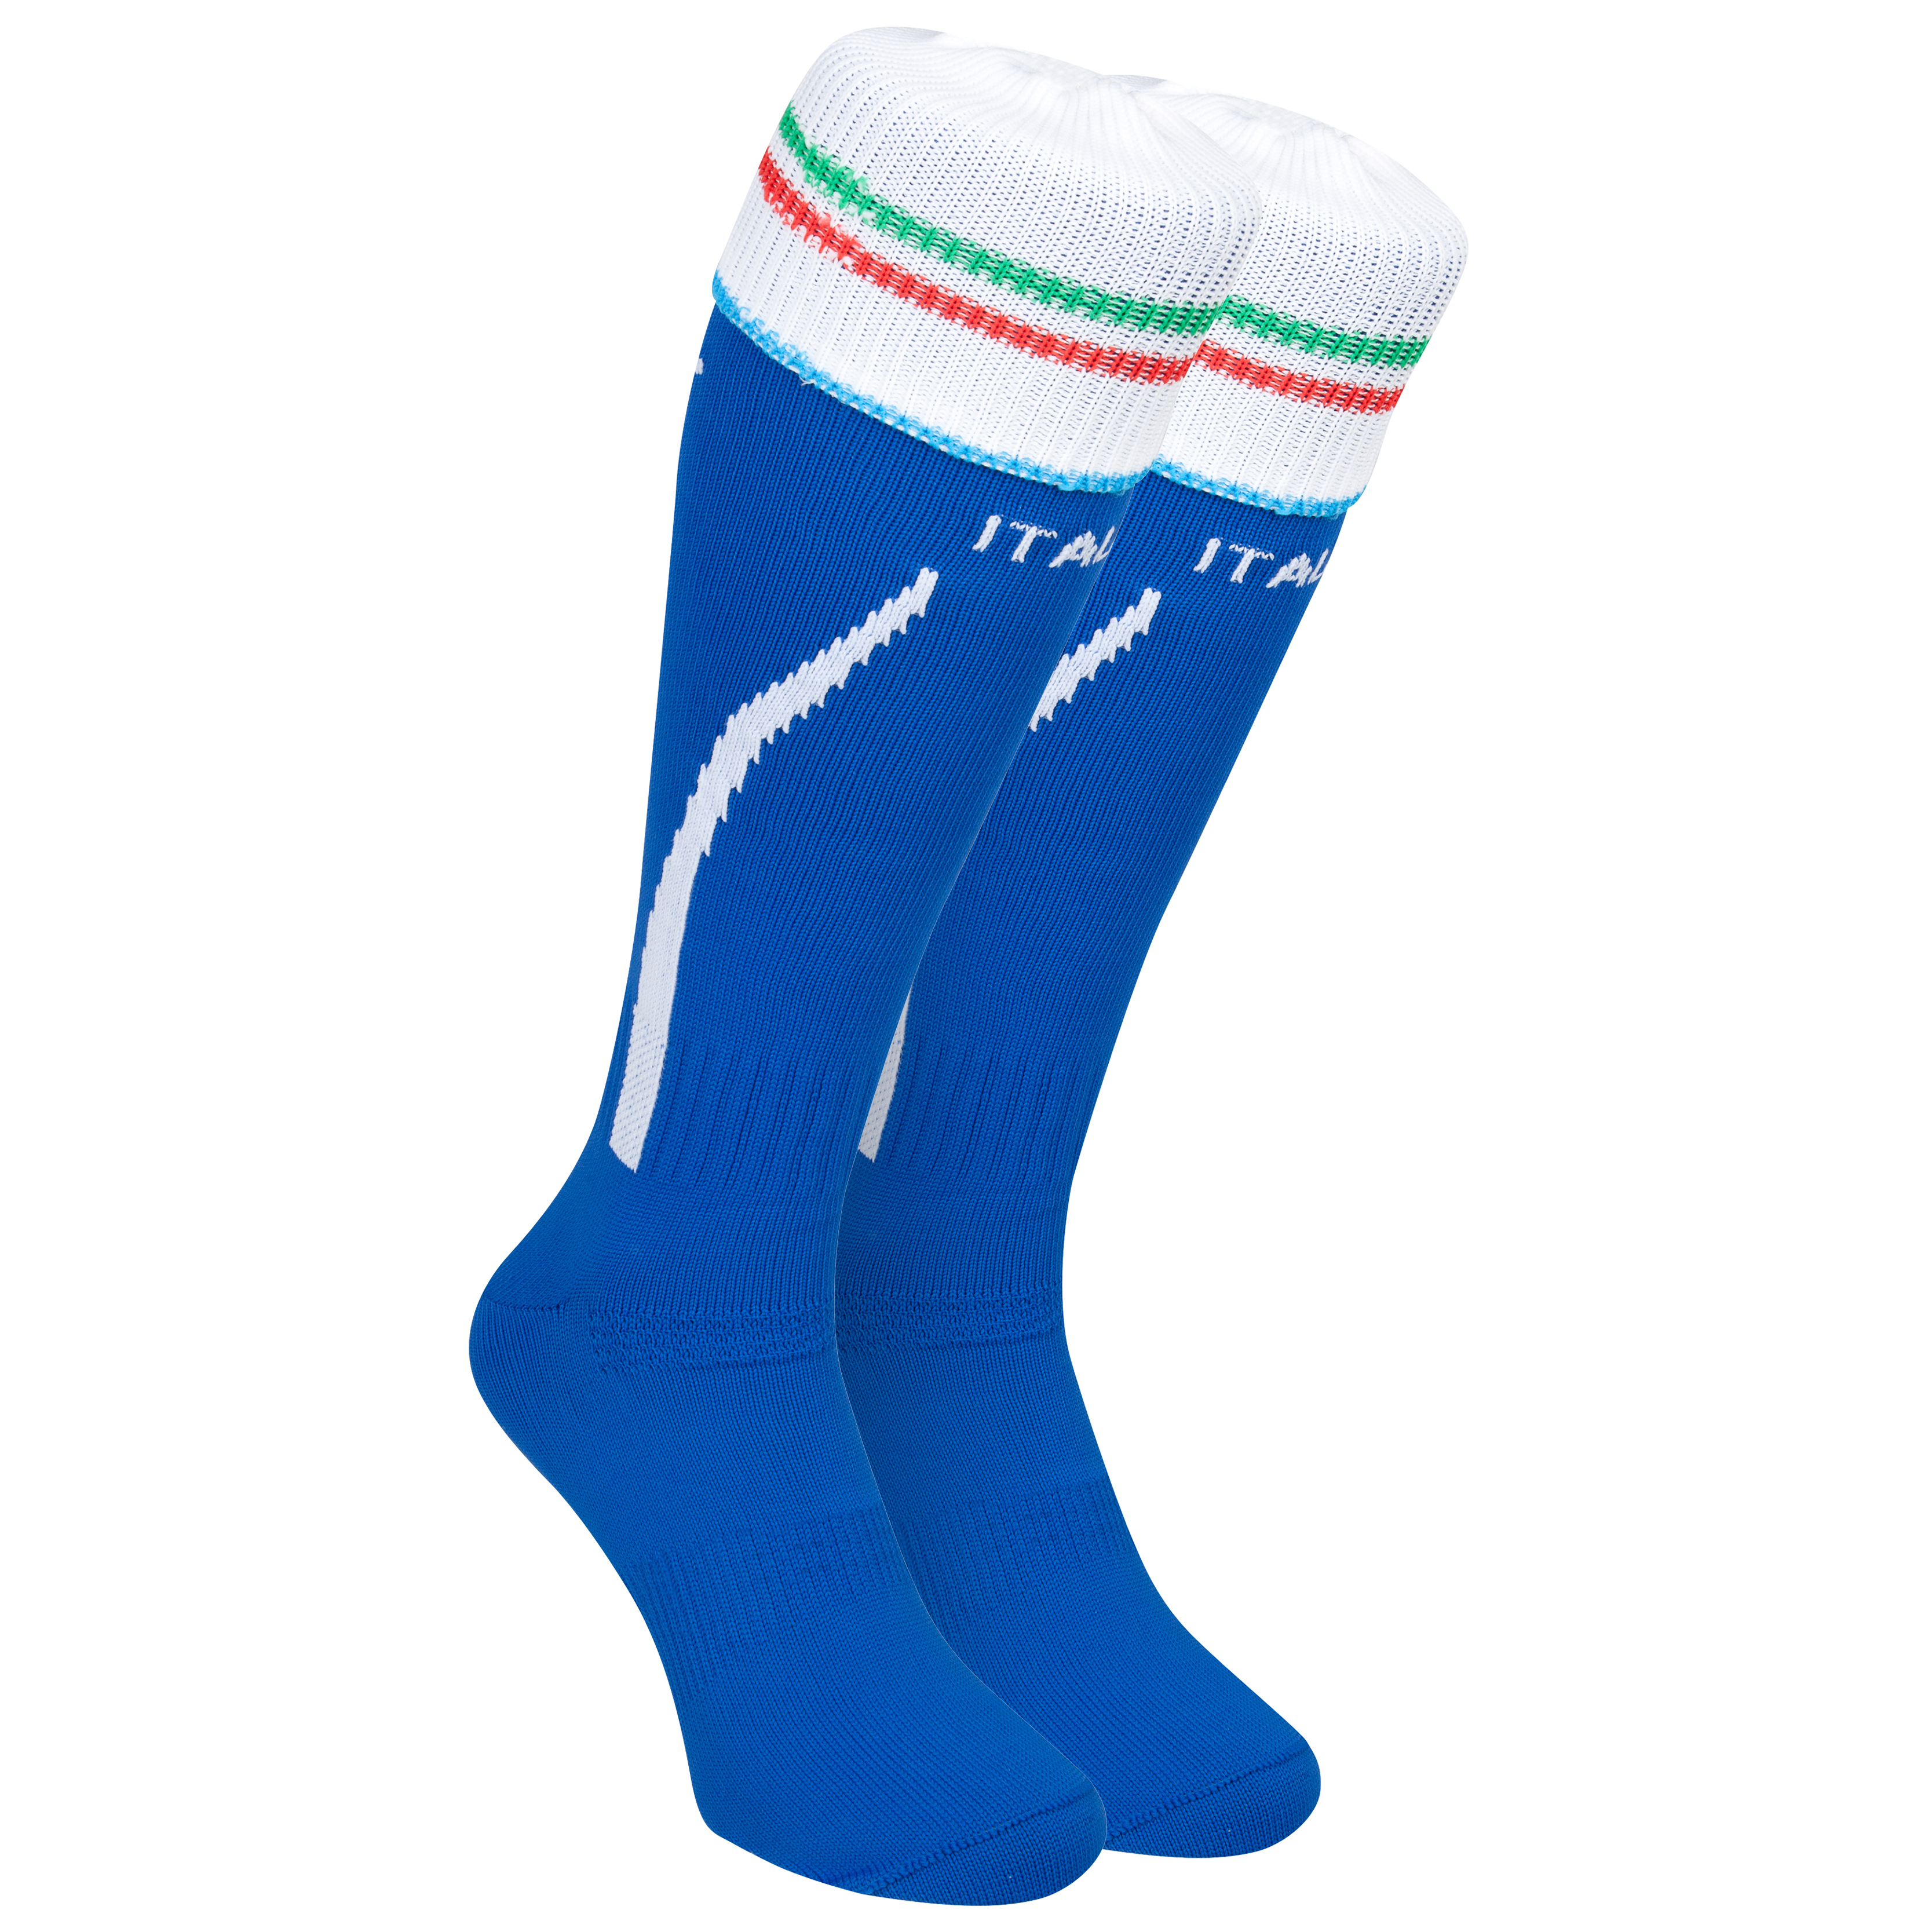 Italy Confederations Cup Home Socks 2013